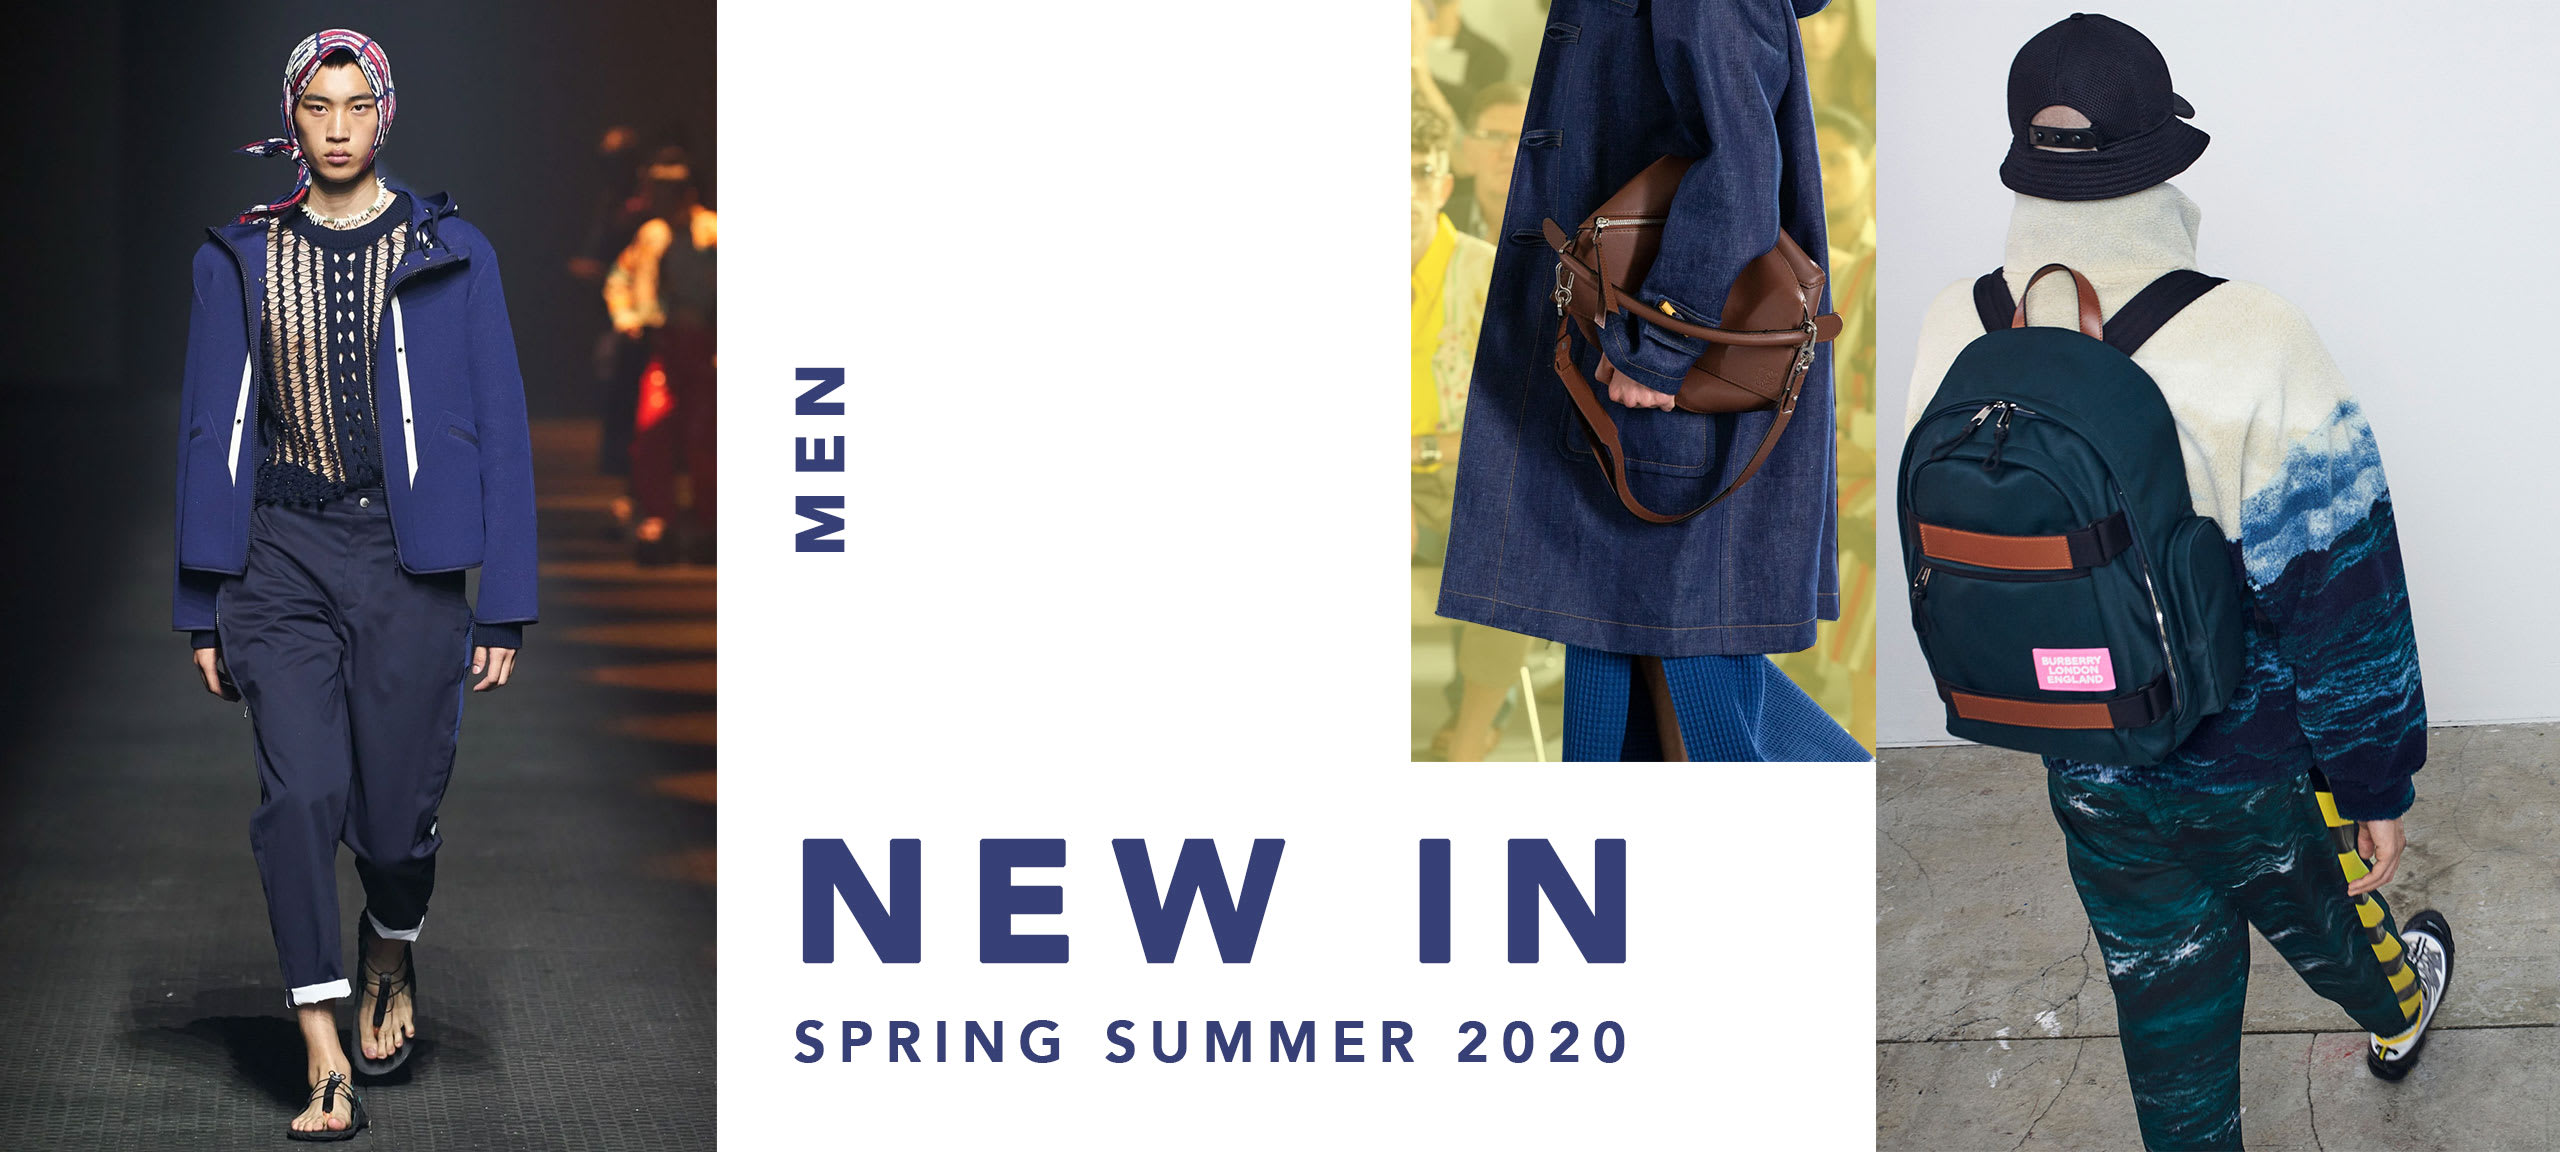 Men New In Spring Summer 2020 by italist